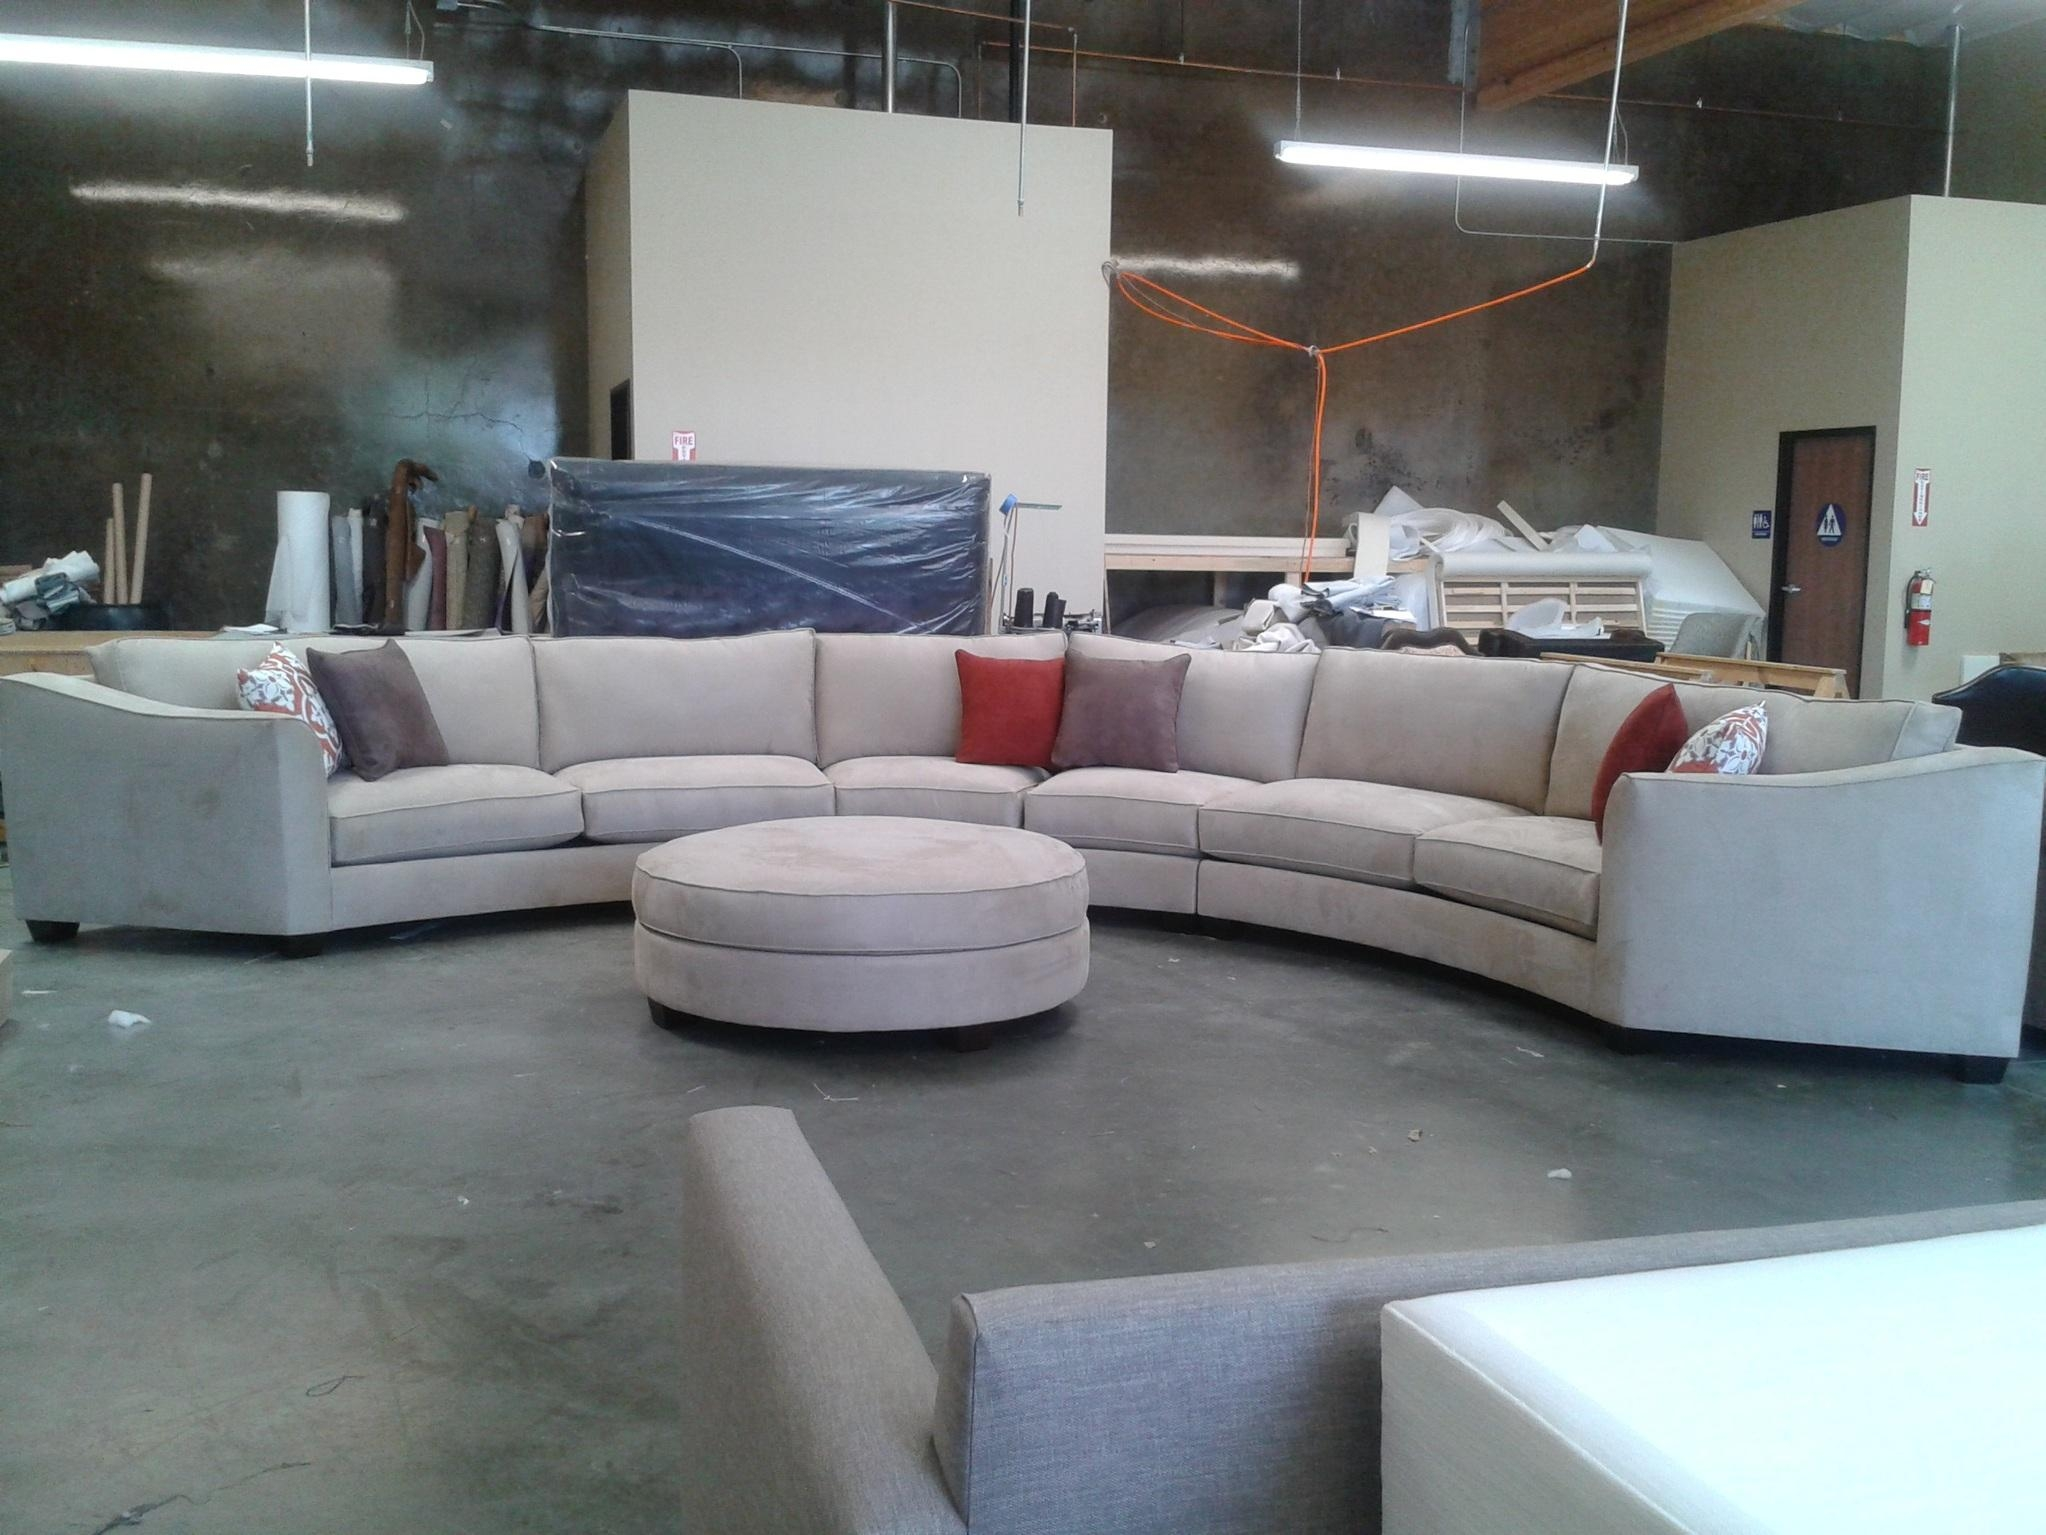 Sofa Round Sectional Bed | Tamingthesat Inside Round Sectional Sofa (Image 18 of 20)